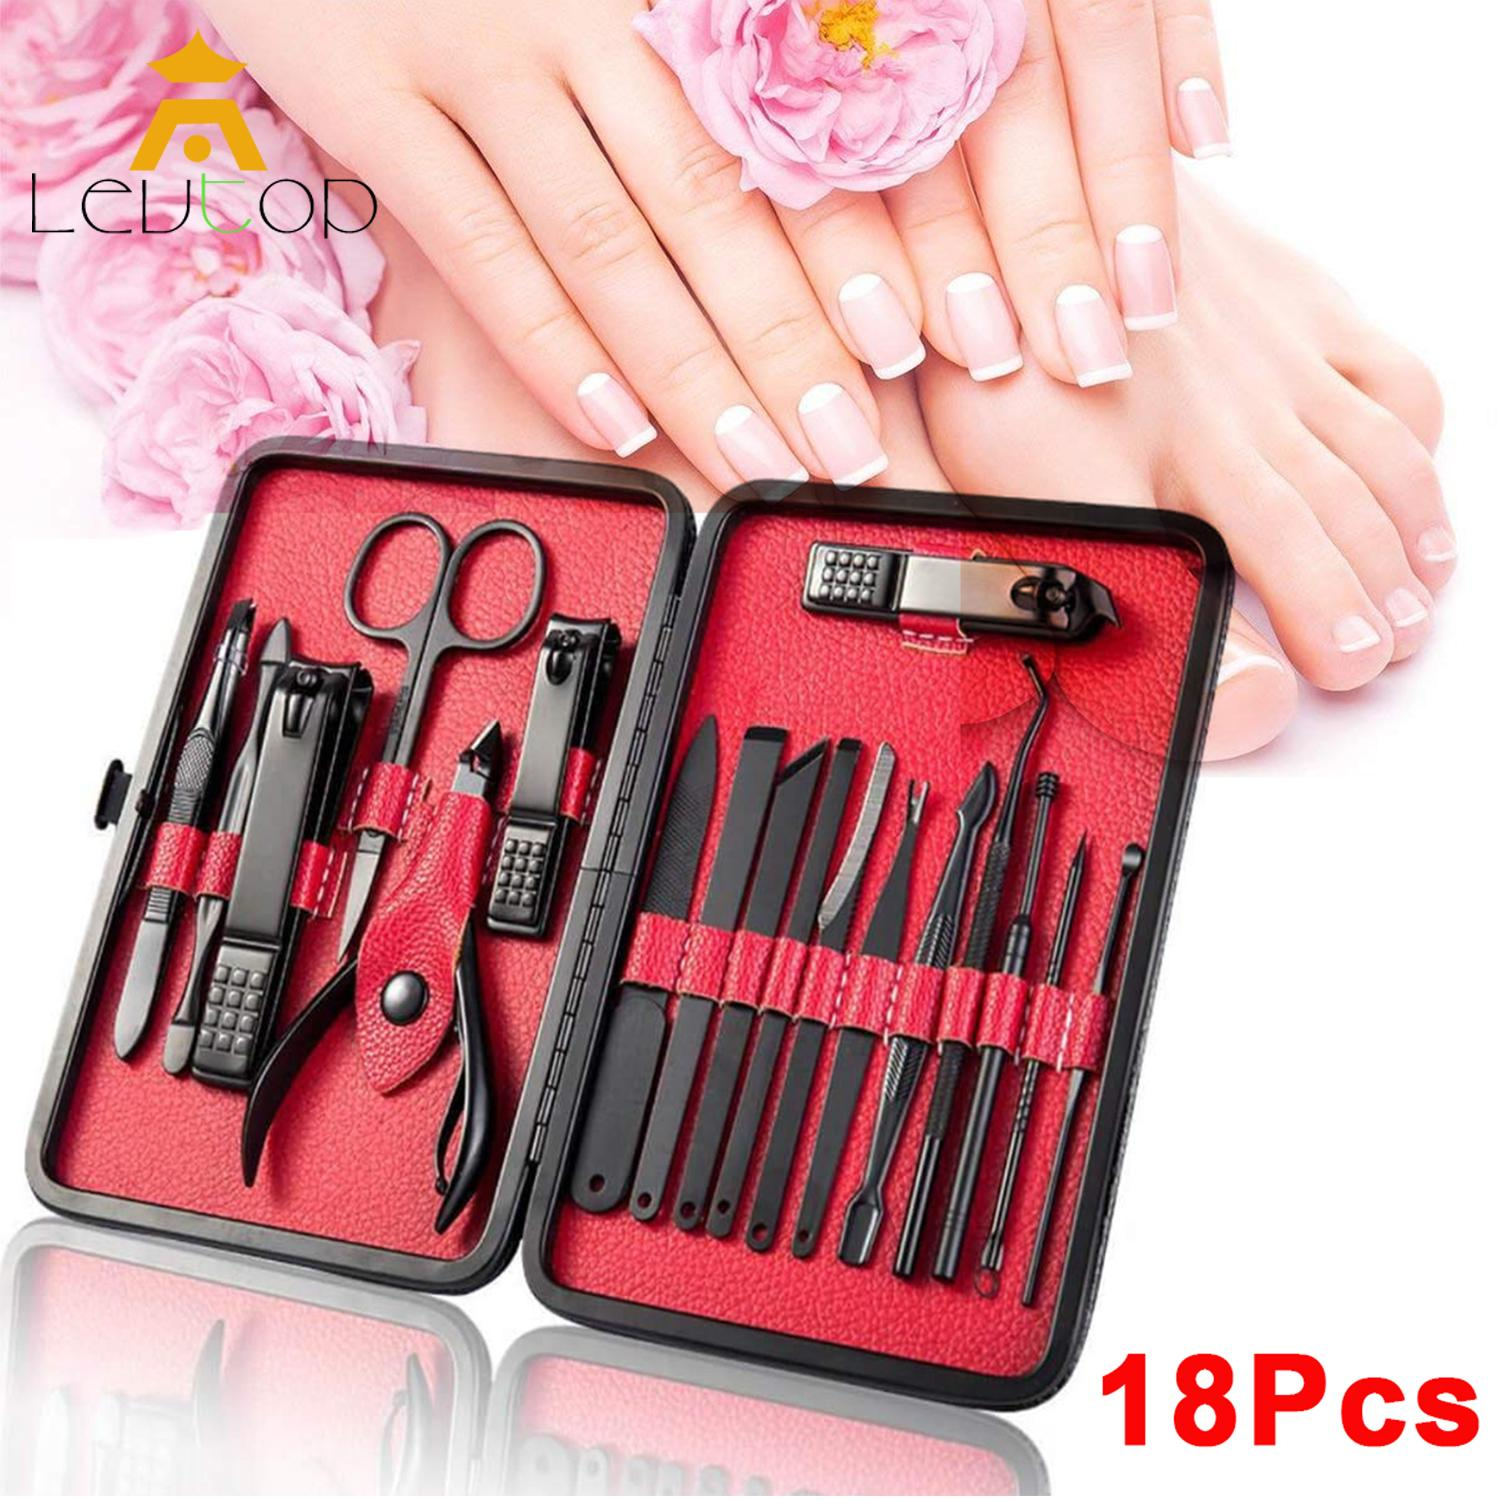 LEVTOP Clippers Set 18 Pcs Stainless Steel Pedicure Manicure Kit Cuticle Grooming Set Personal Nail Hand